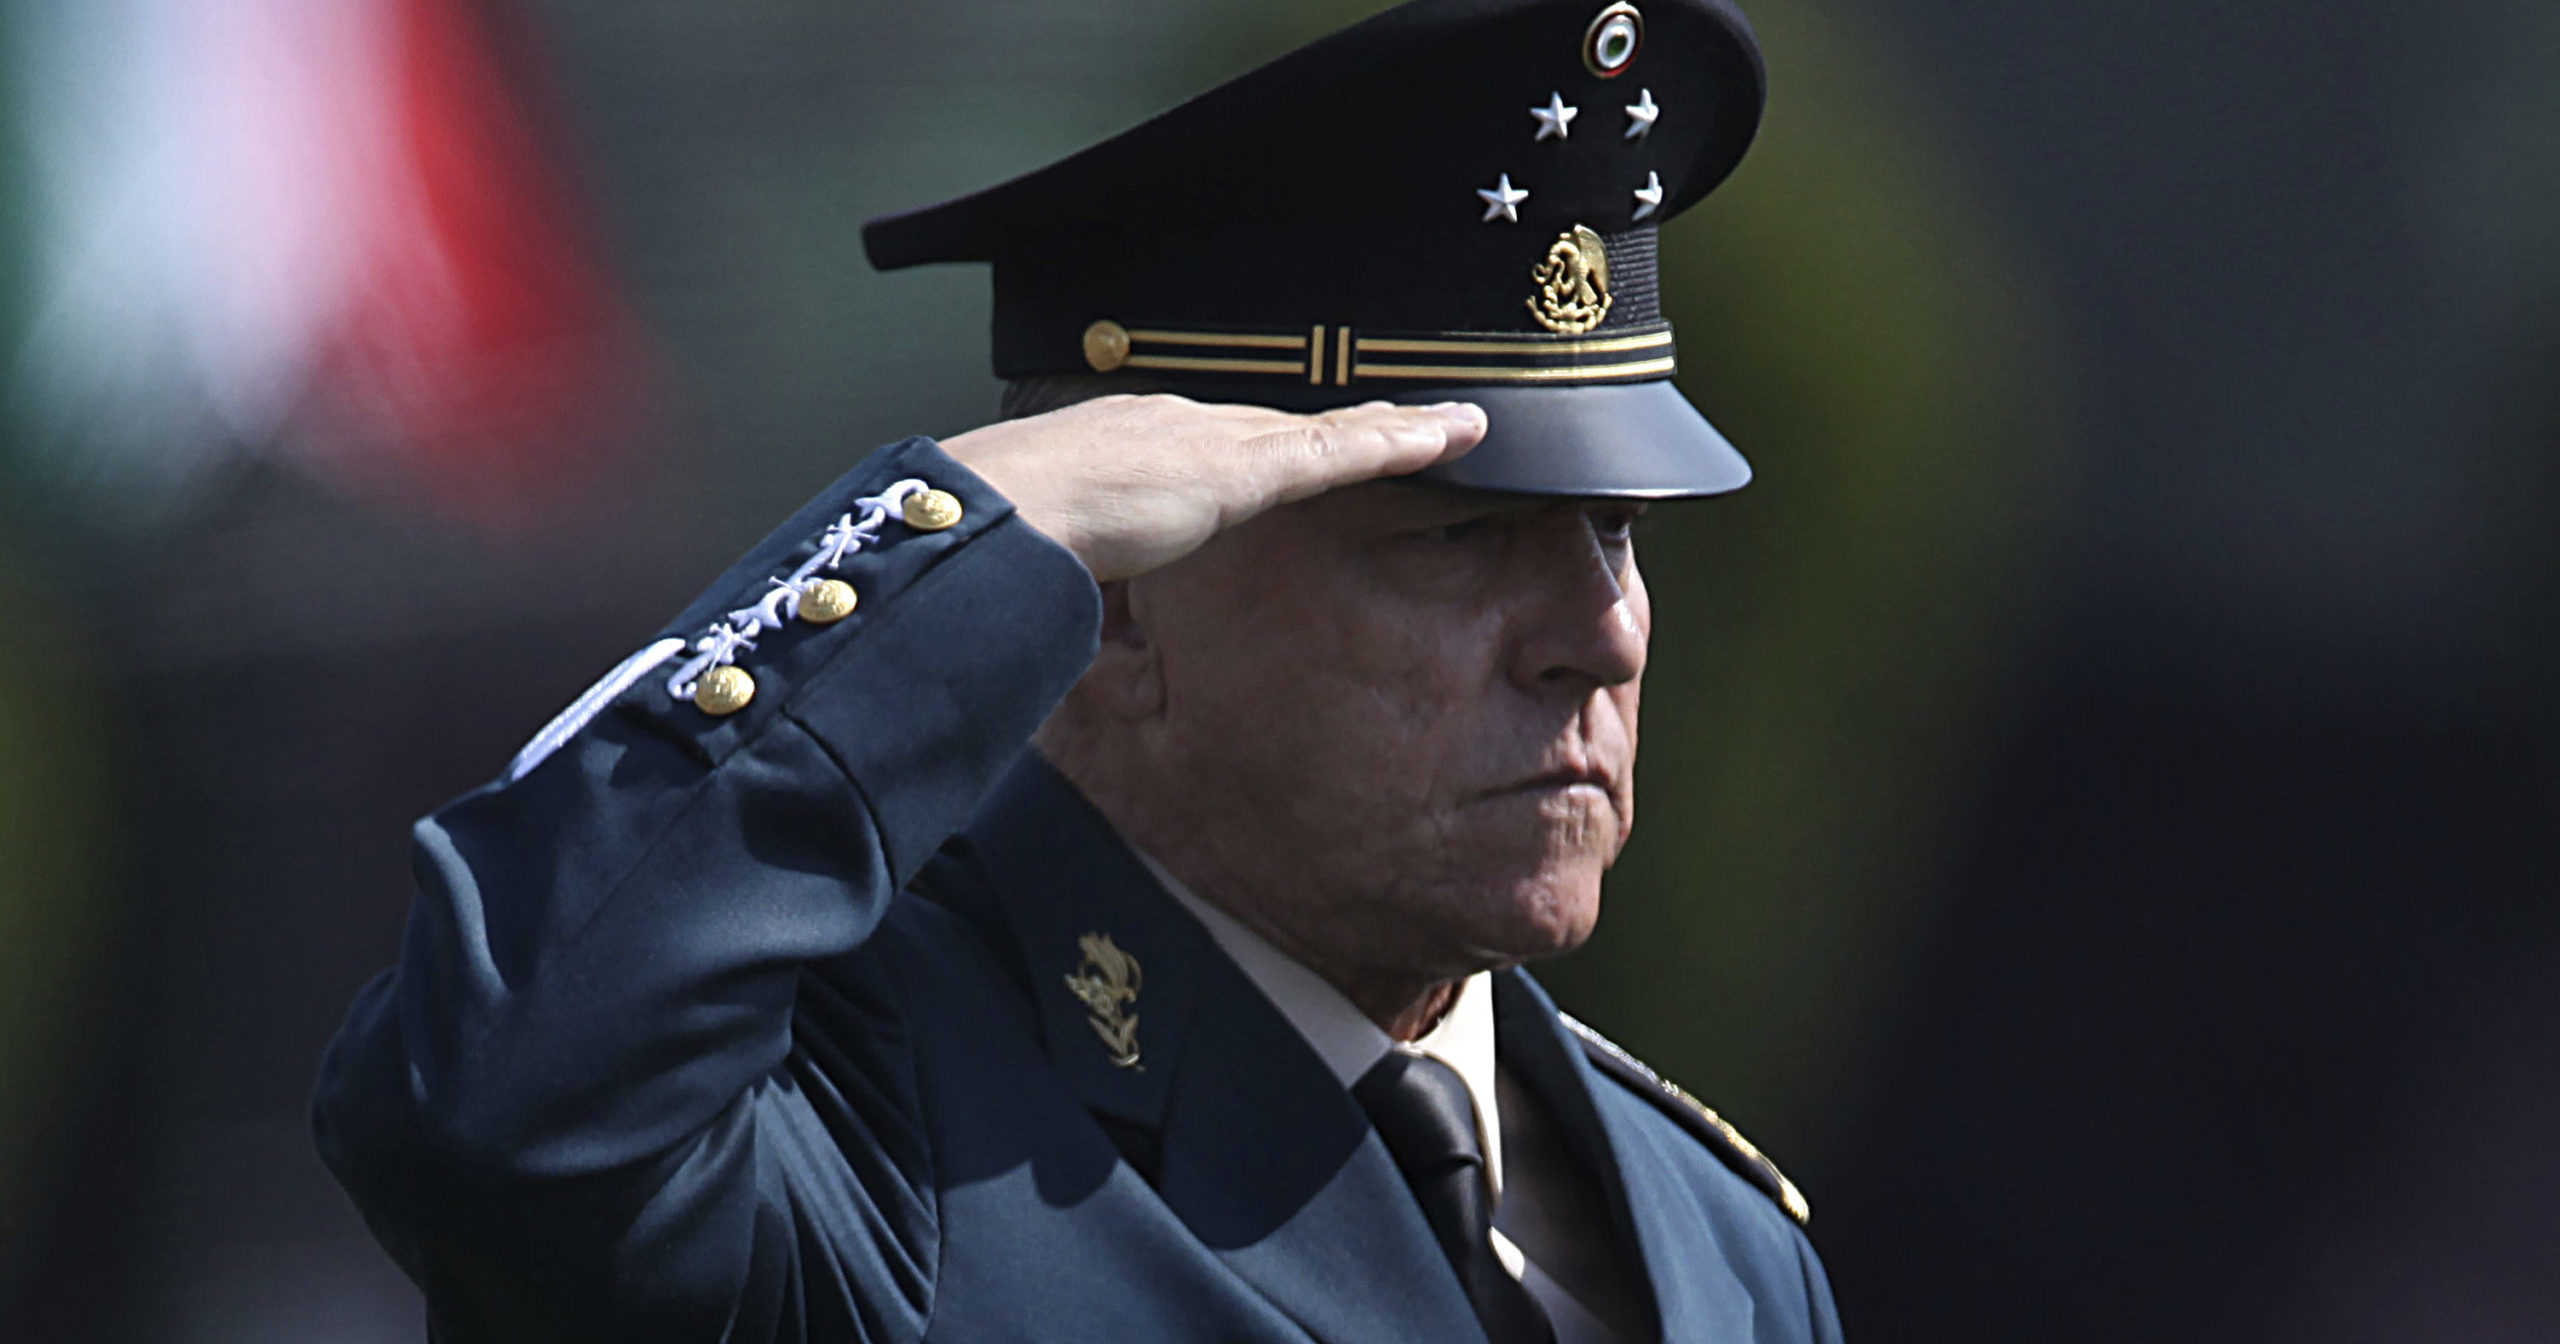 In this April 16, 2016, file photo, Mexico's Defense Secretary Gen. Salvador Cienfuegos Zepeda salutes soldiers at a military camp in Mexico City.